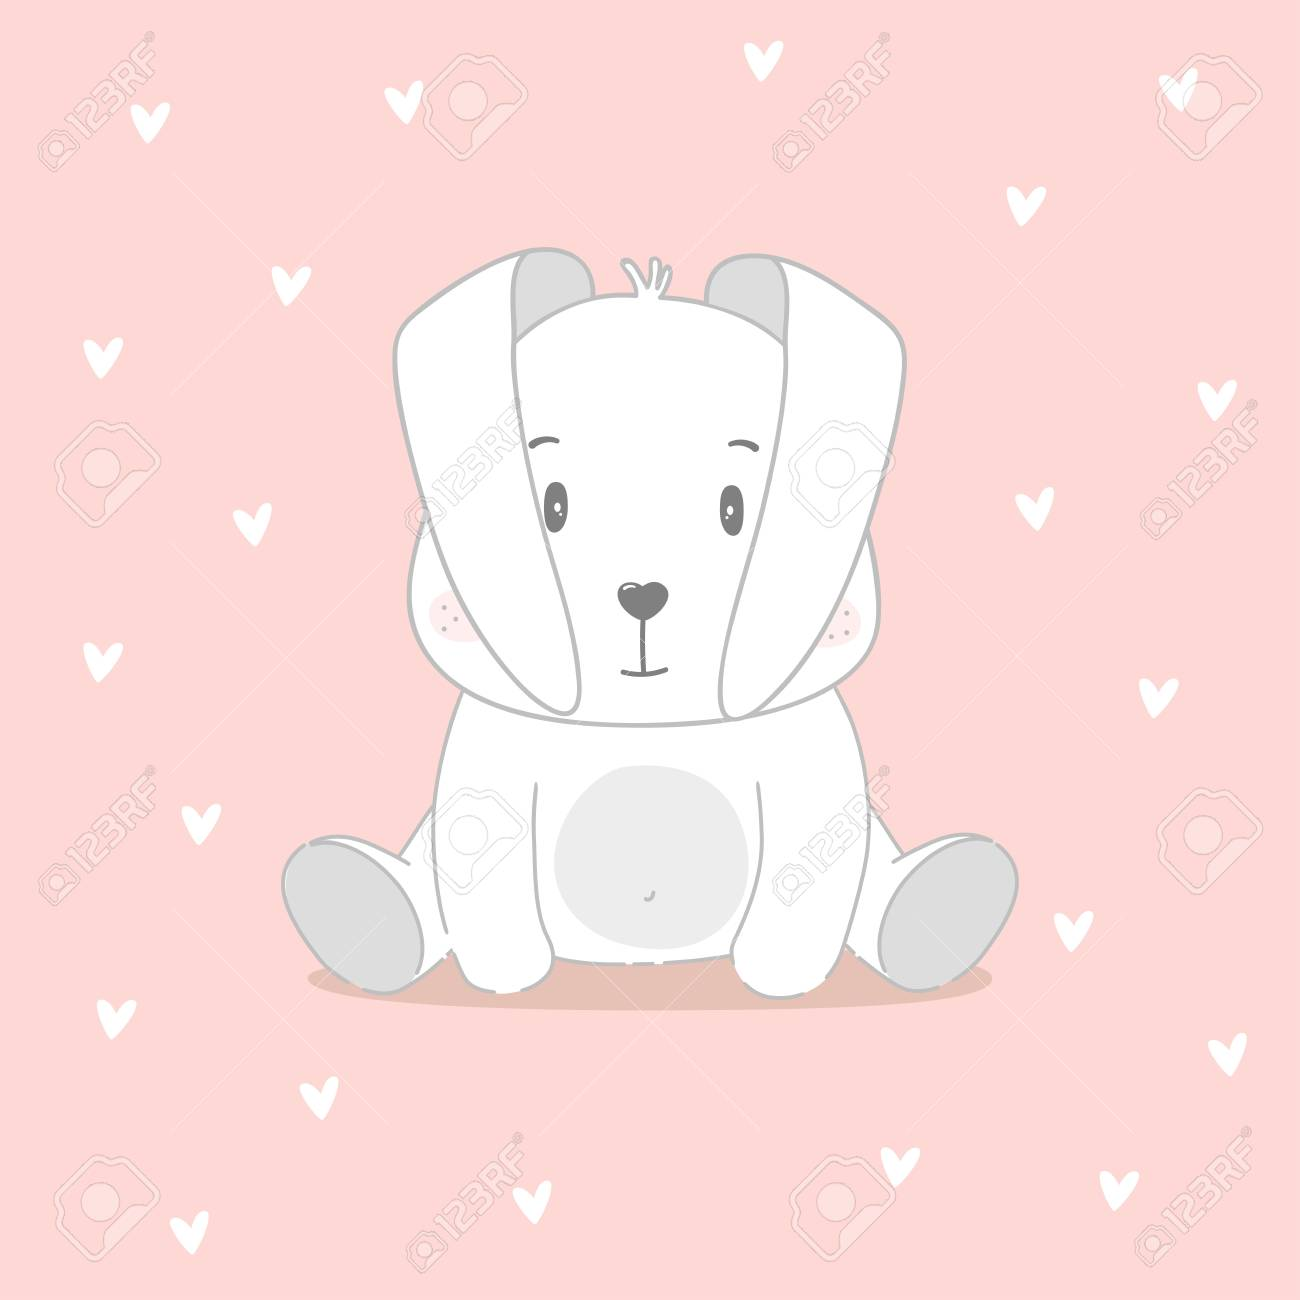 photograph relating to Baby Shower Card Printable titled Lovely bunny print. Cute kid shower card. Vector case in point..